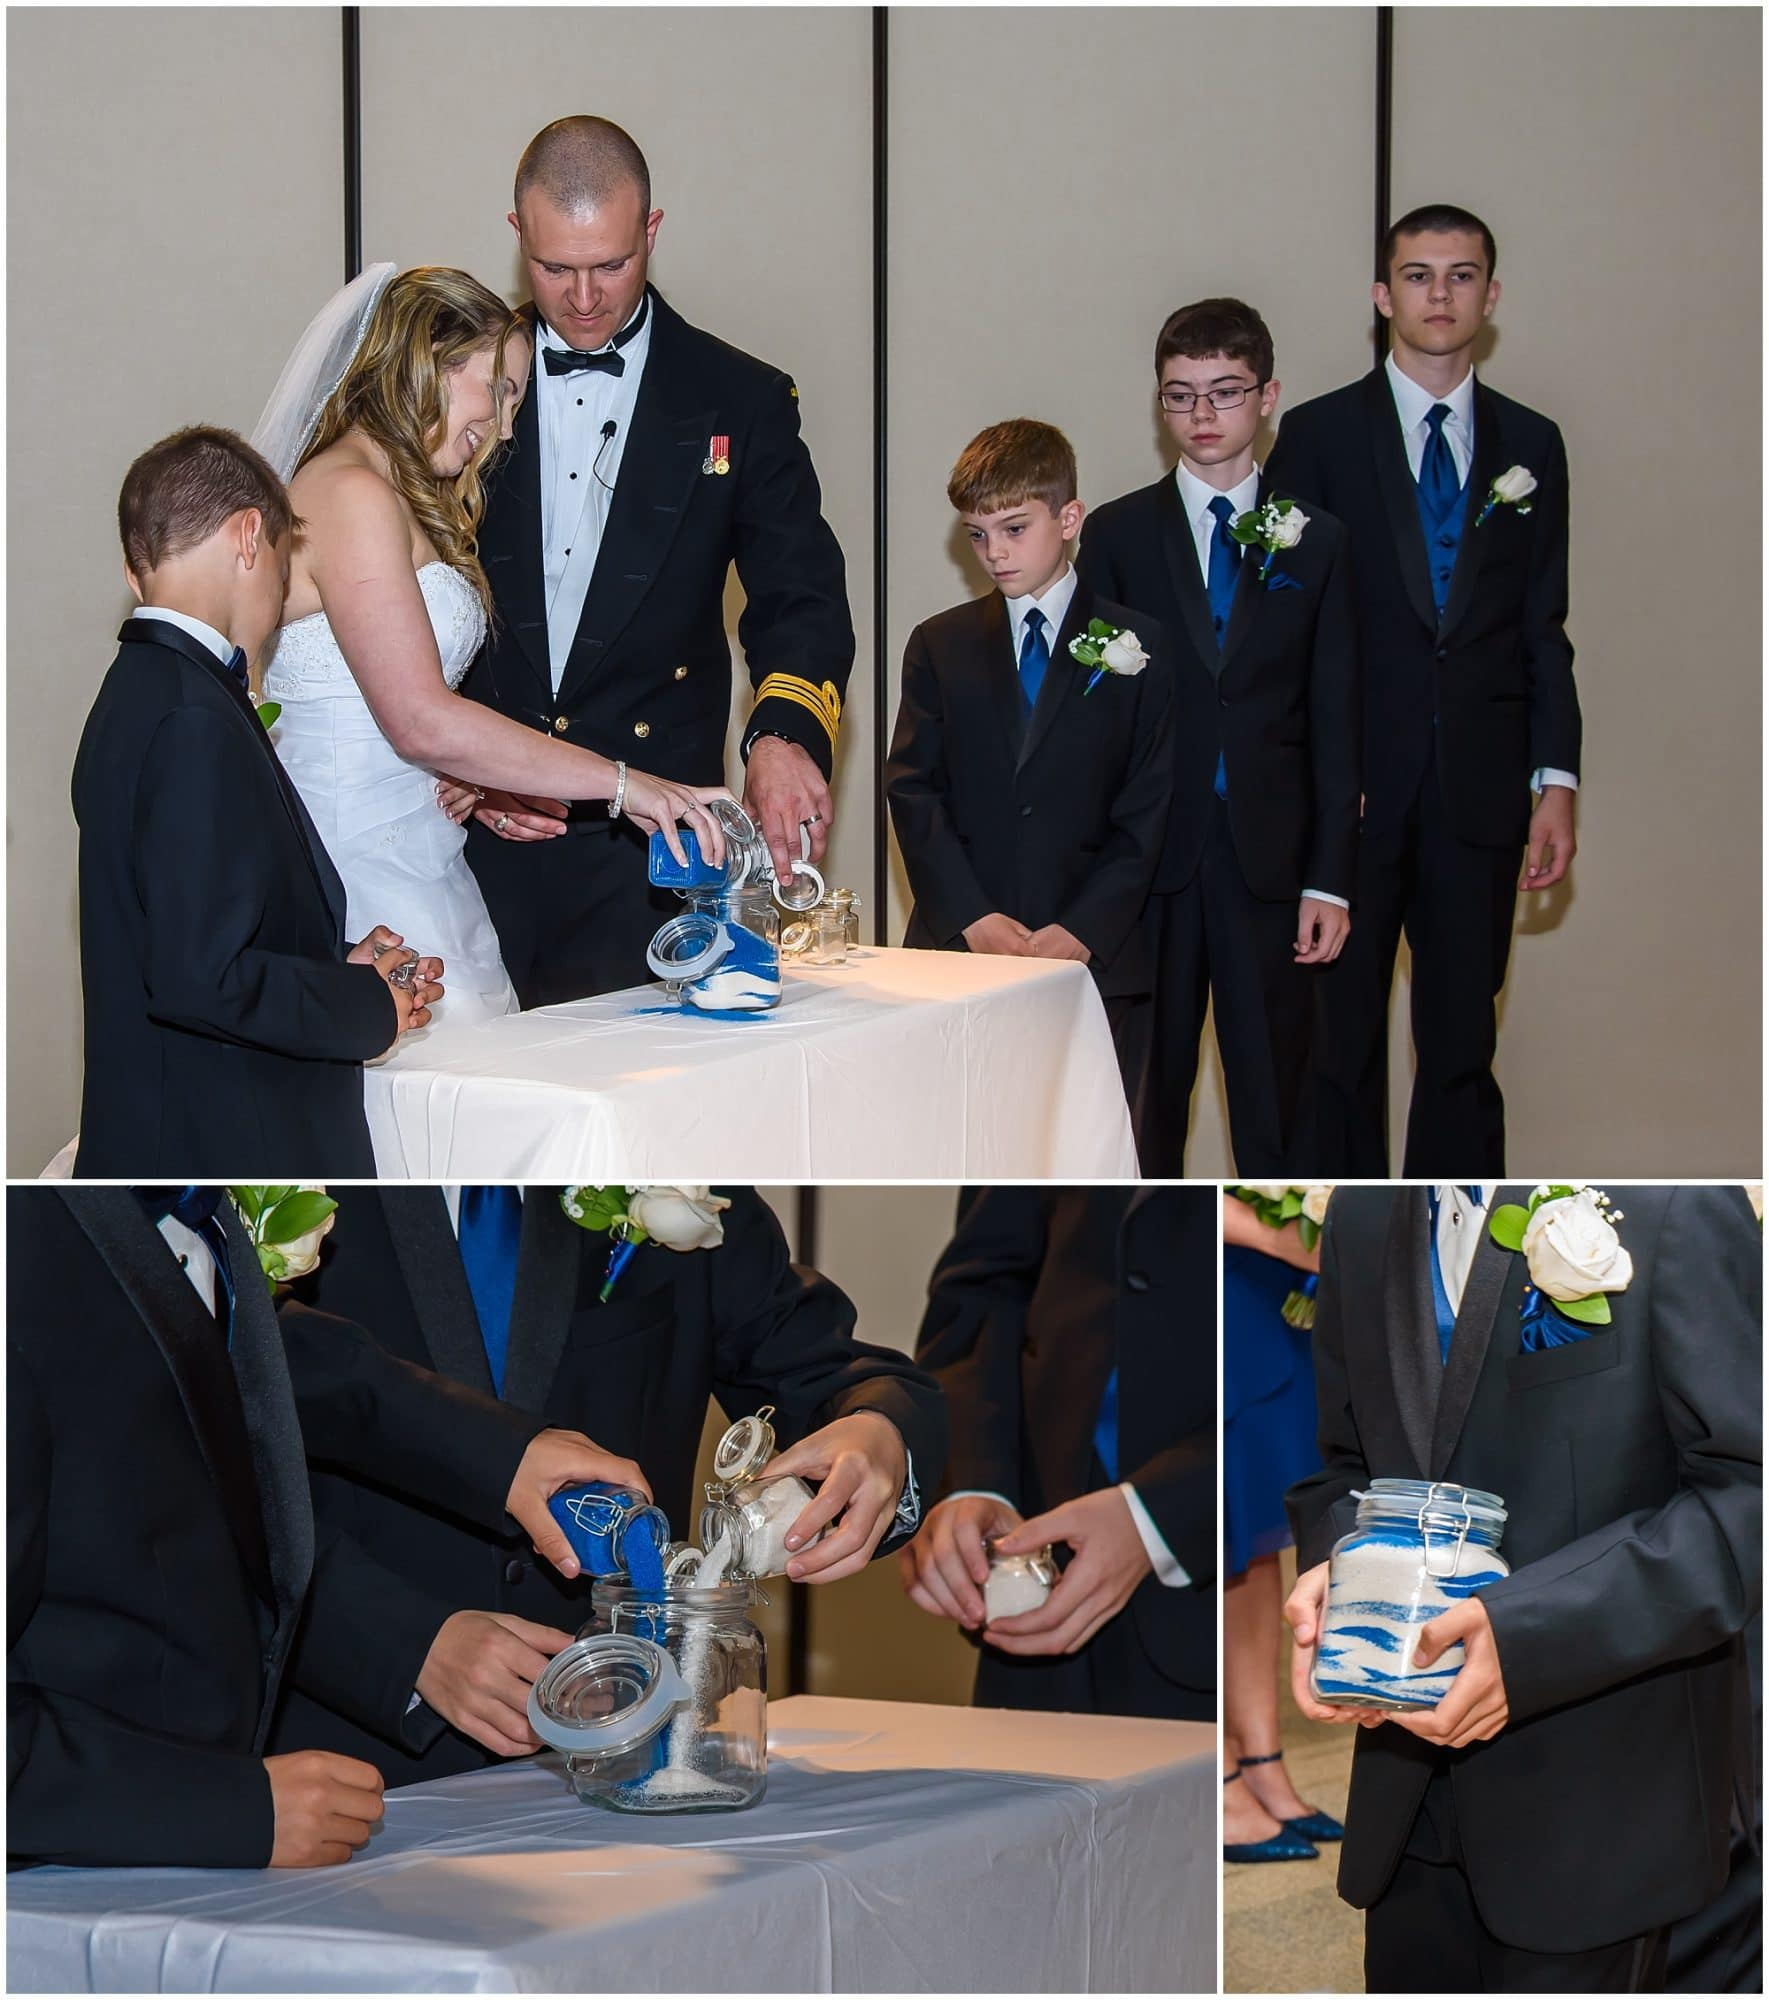 The bride and groom with their children perform a wedding sand ceremony at their Juno Tower wedding.